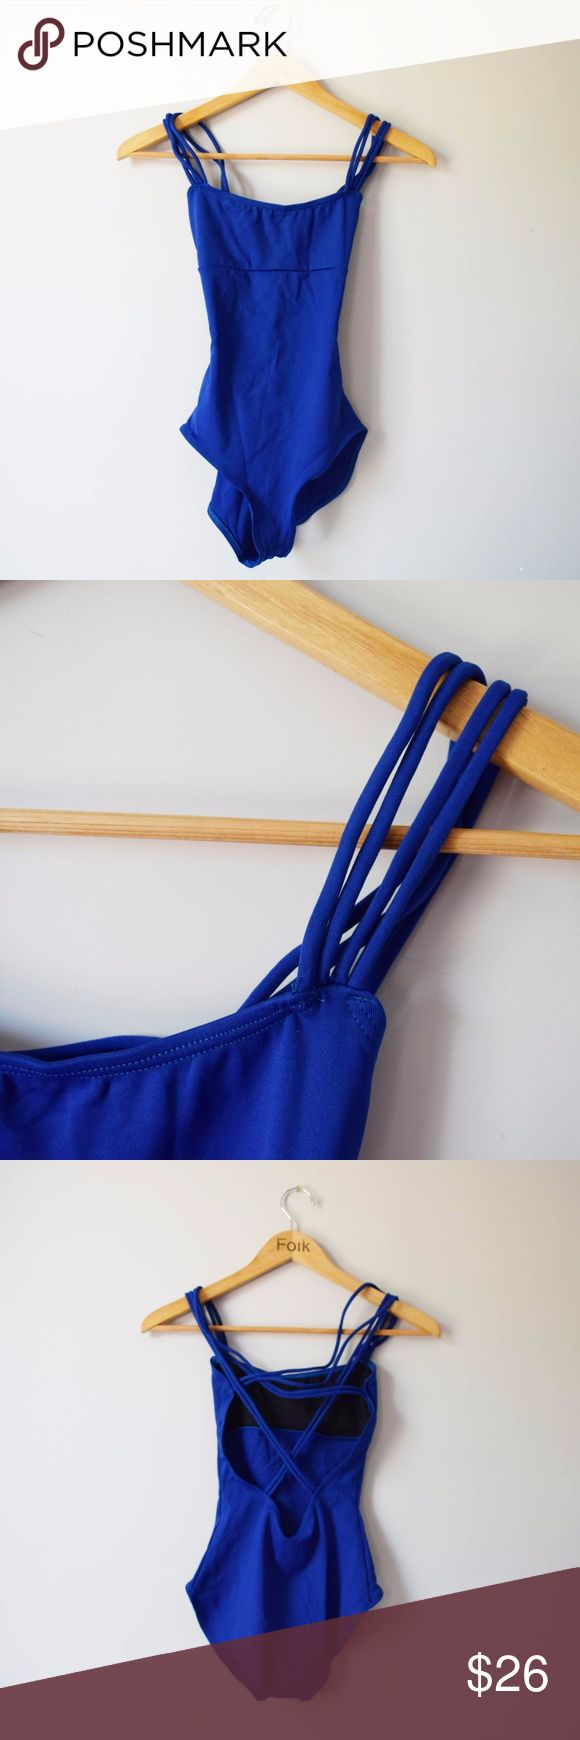 Capezio Royal Blue Leotard NEW Capezio Leotard in royal blue with strap detail in front and back. No tags, but unworn and in perfect condition. See photos for front lining. Women's size SM. Perfect dance wear, activewear or for layering under shorts, skirts, jeans, sheer dresses! Capezio Other